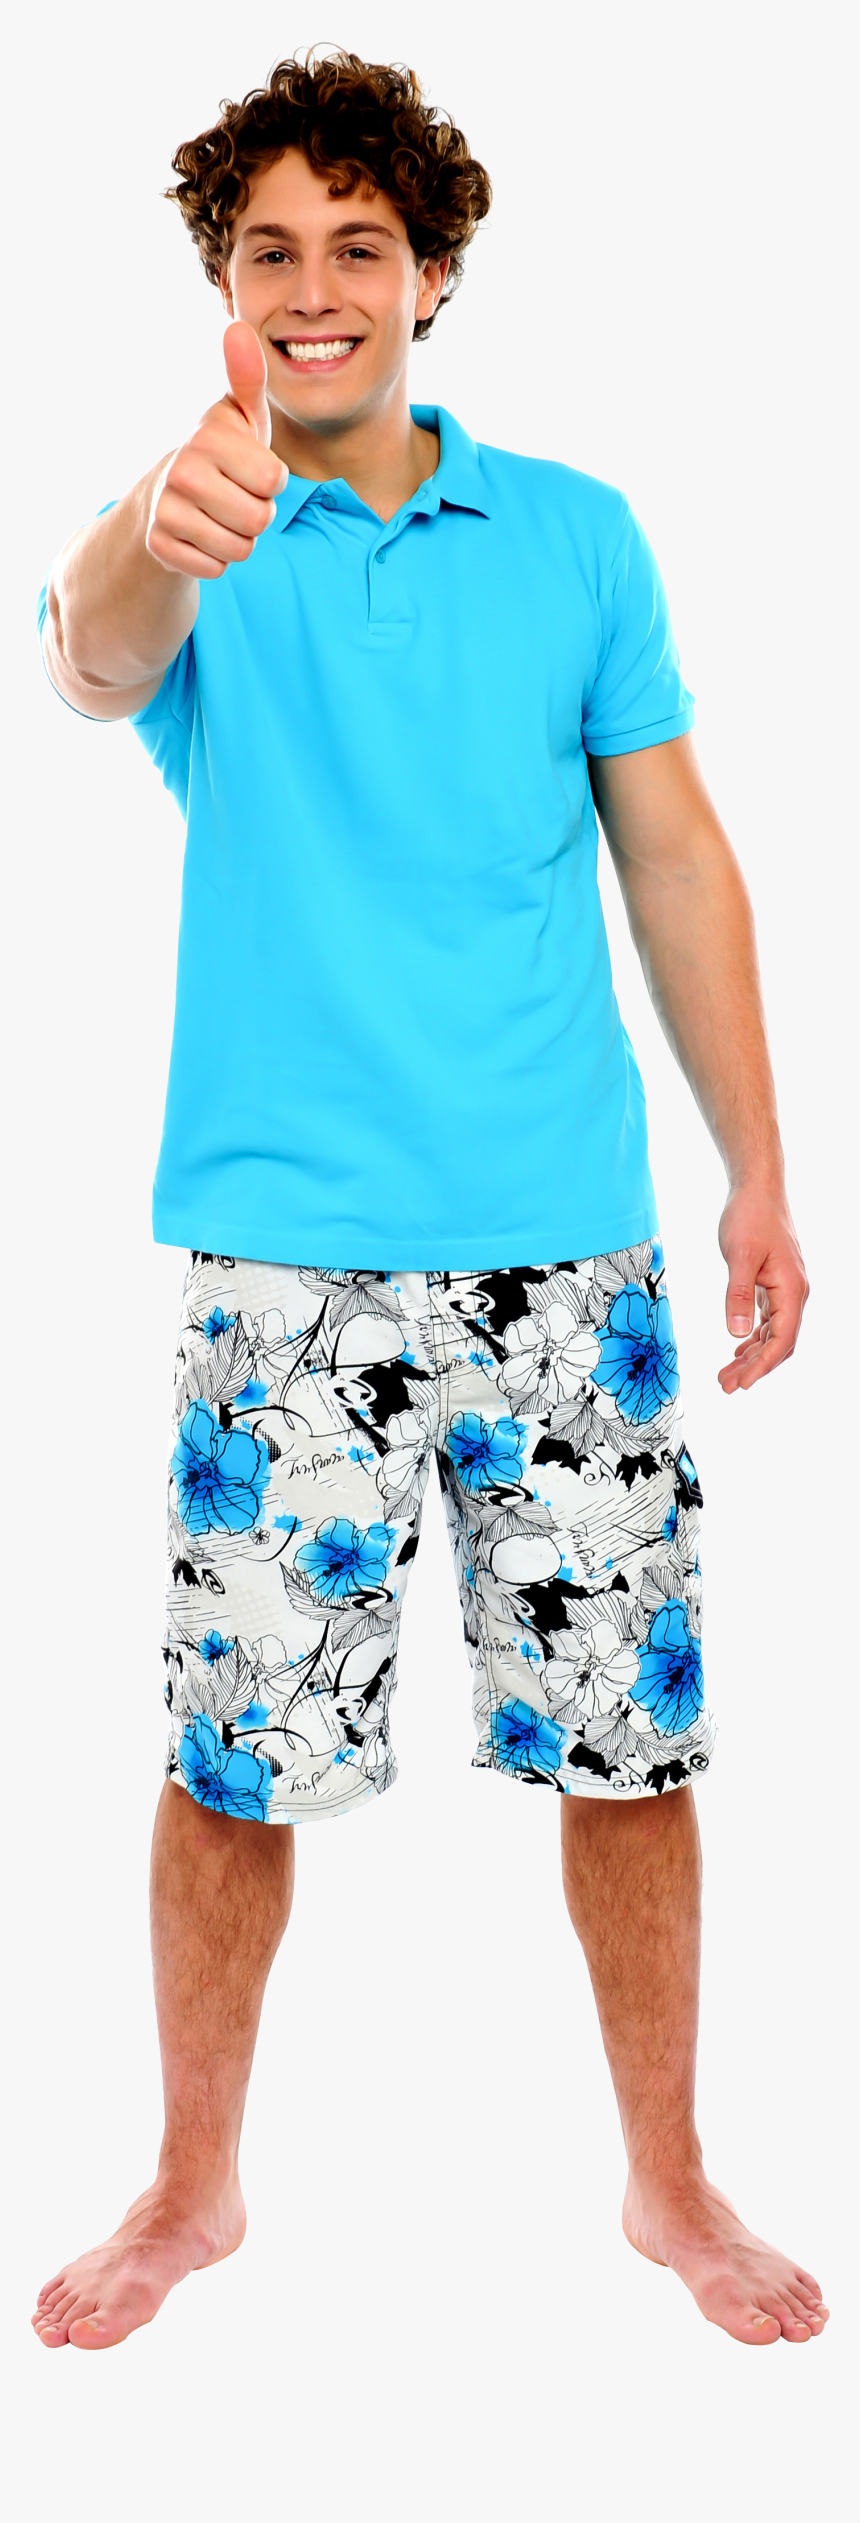 Men Pointing Thumbs Up Png Image - Casual Guy, Transparent Png, Free Download